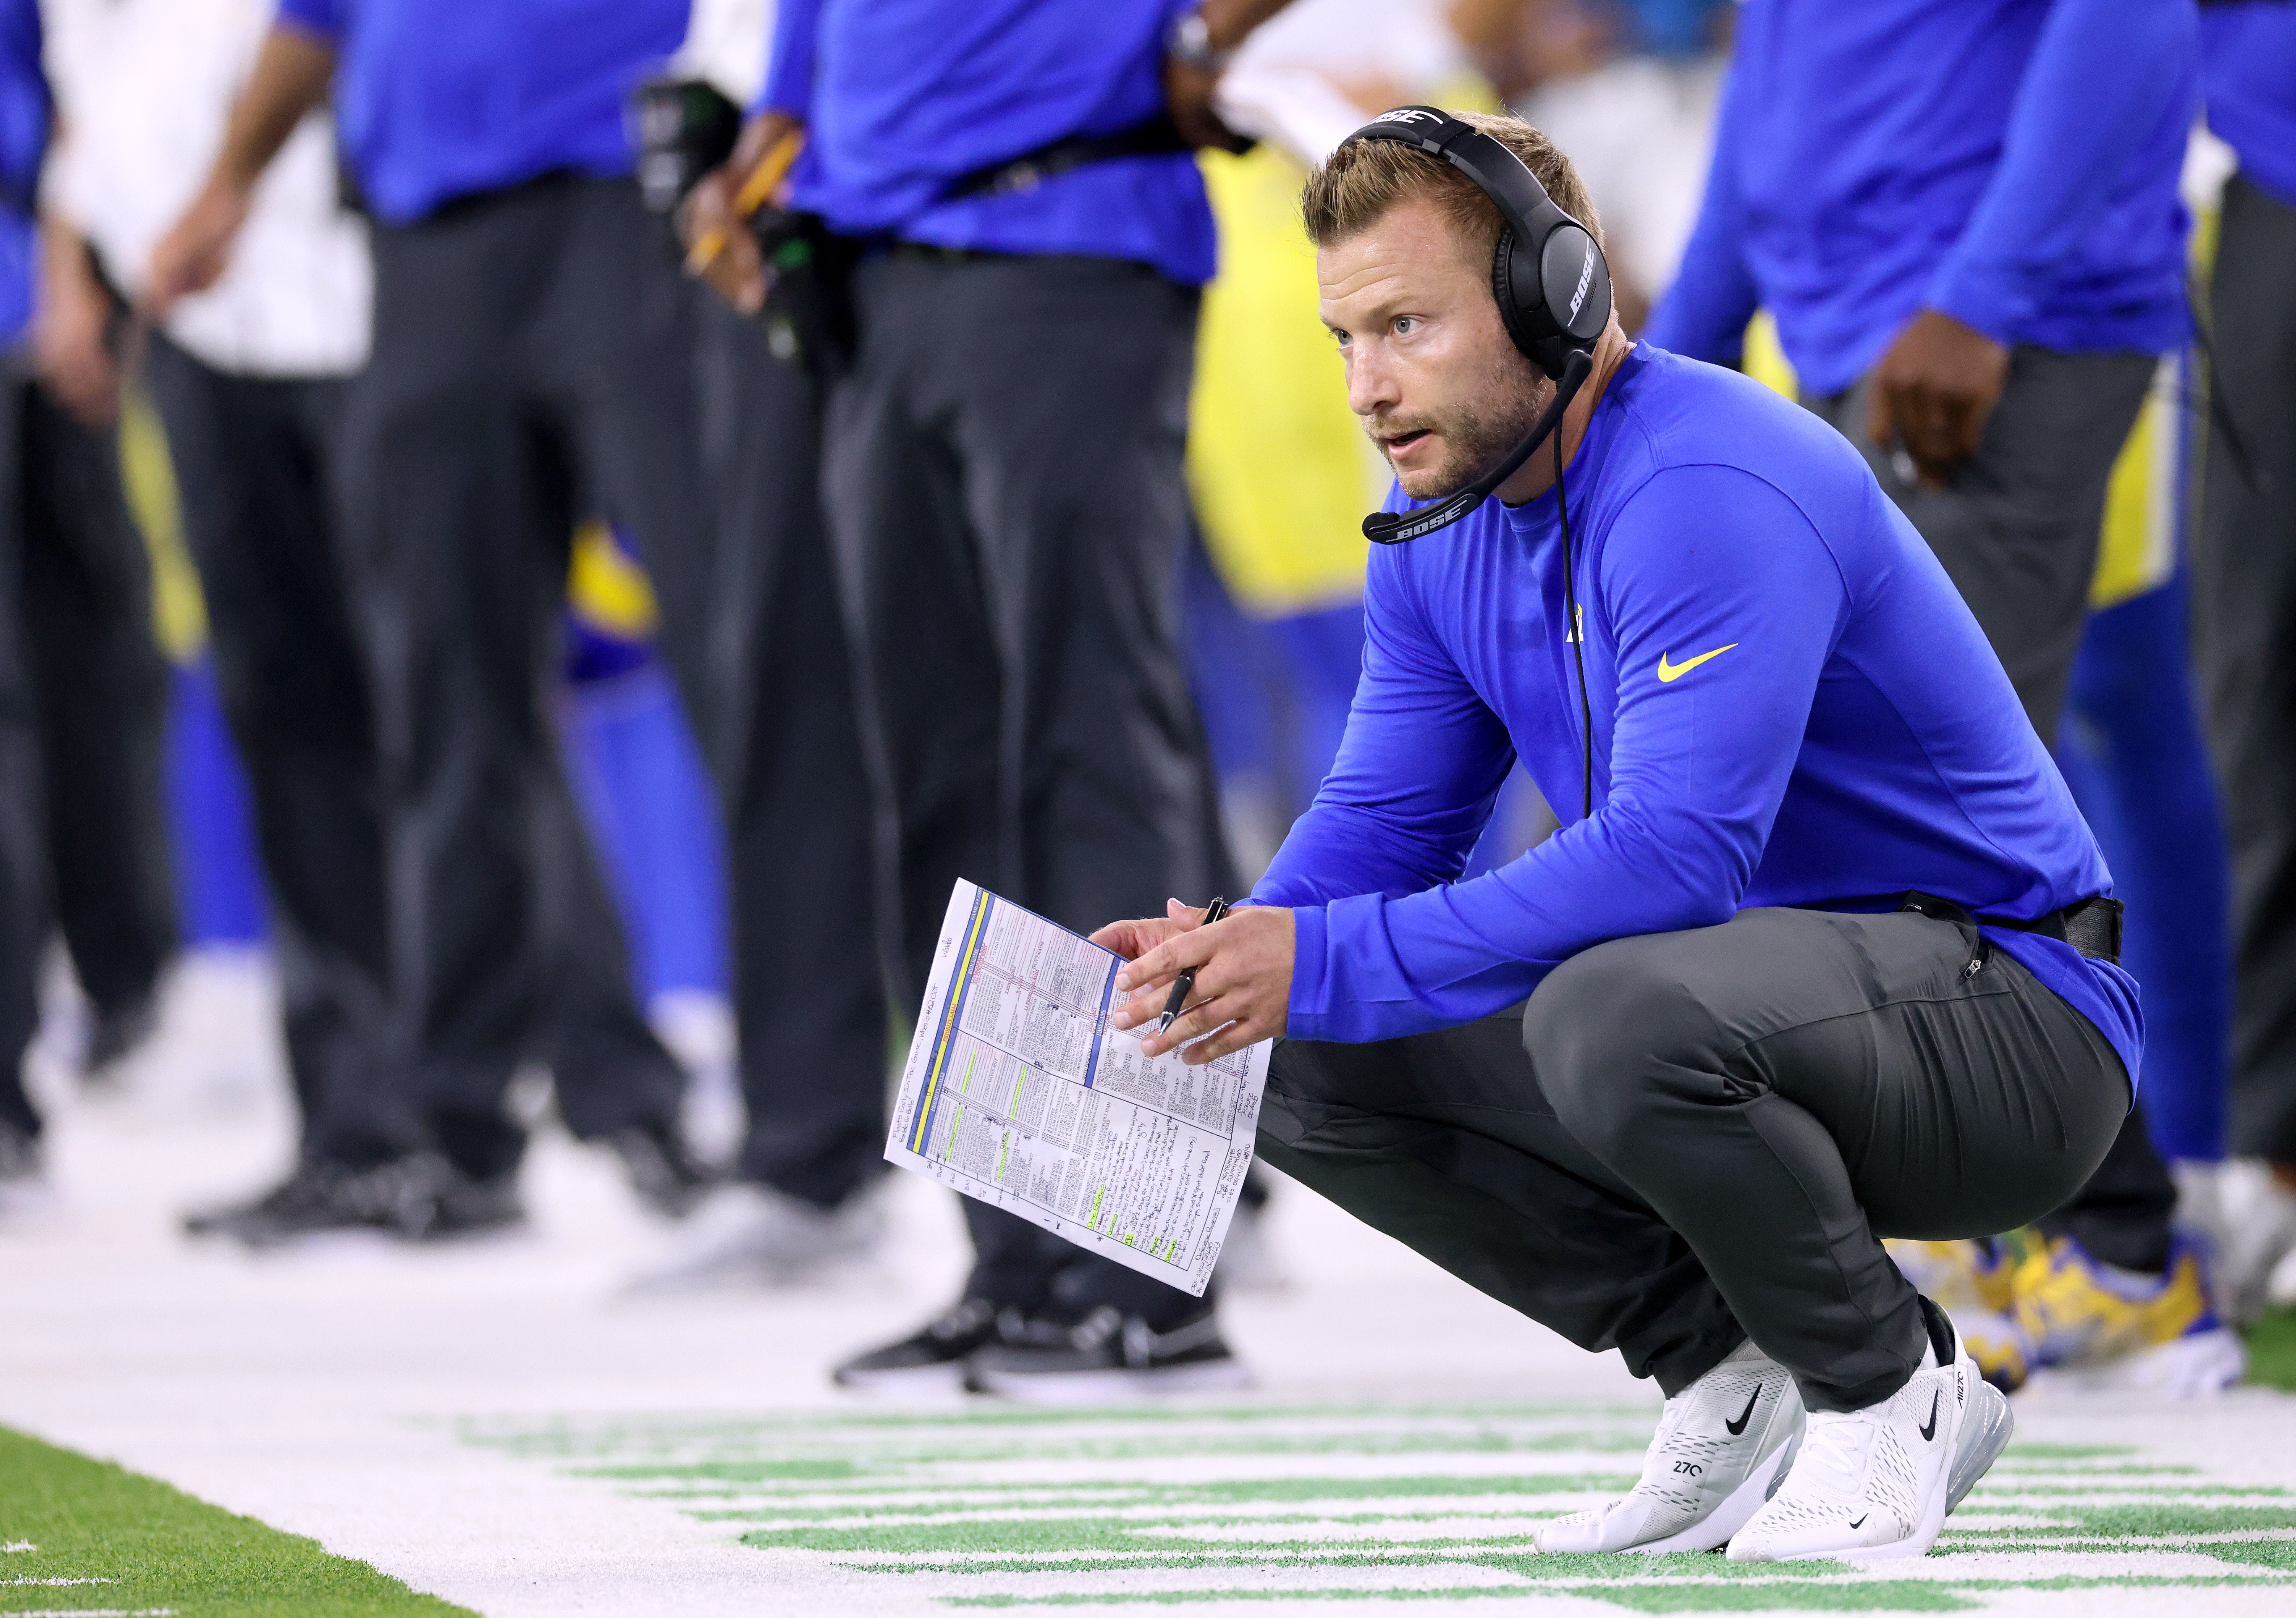 Head coach Sean McVay of the Los Angeles Rams on the sidelines during a 34-14 win over the Chicago Bears at SoFi Stadium on September 12, 2021 in Inglewood, California.